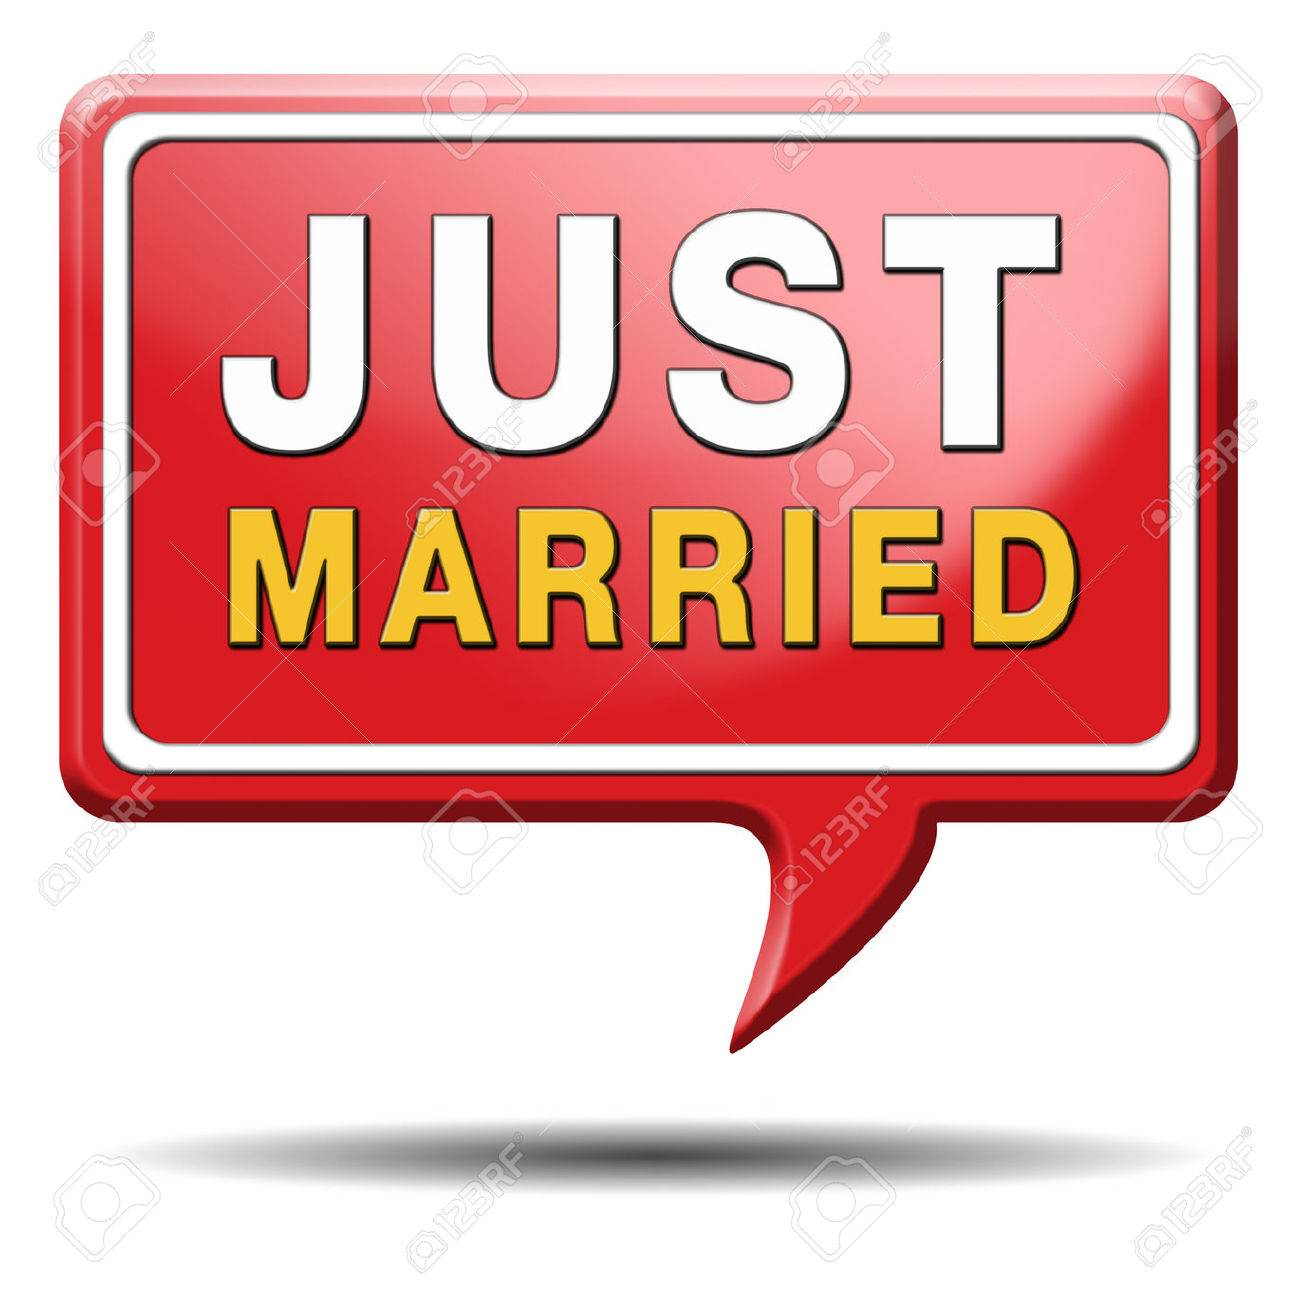 Married no dating sign